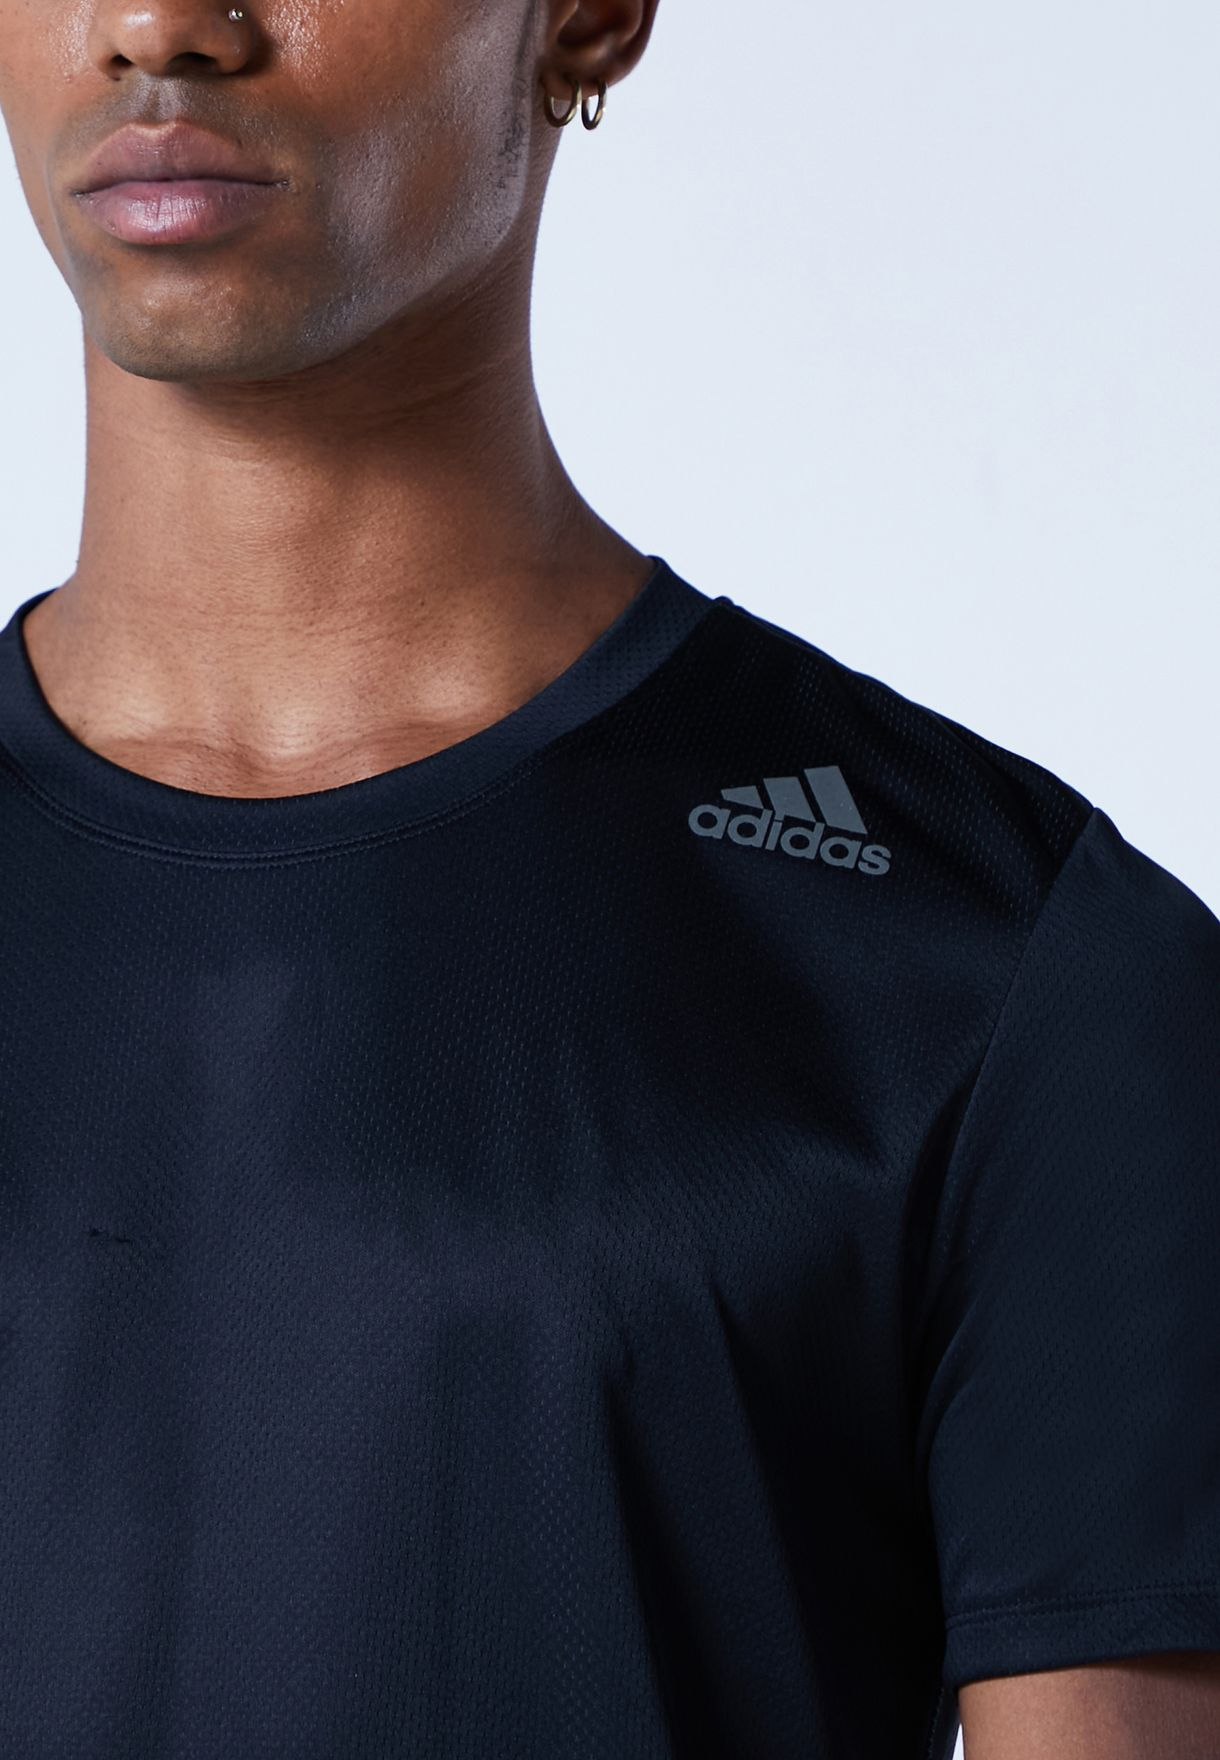 Adidas Heat Ready T-shirt - Fashion